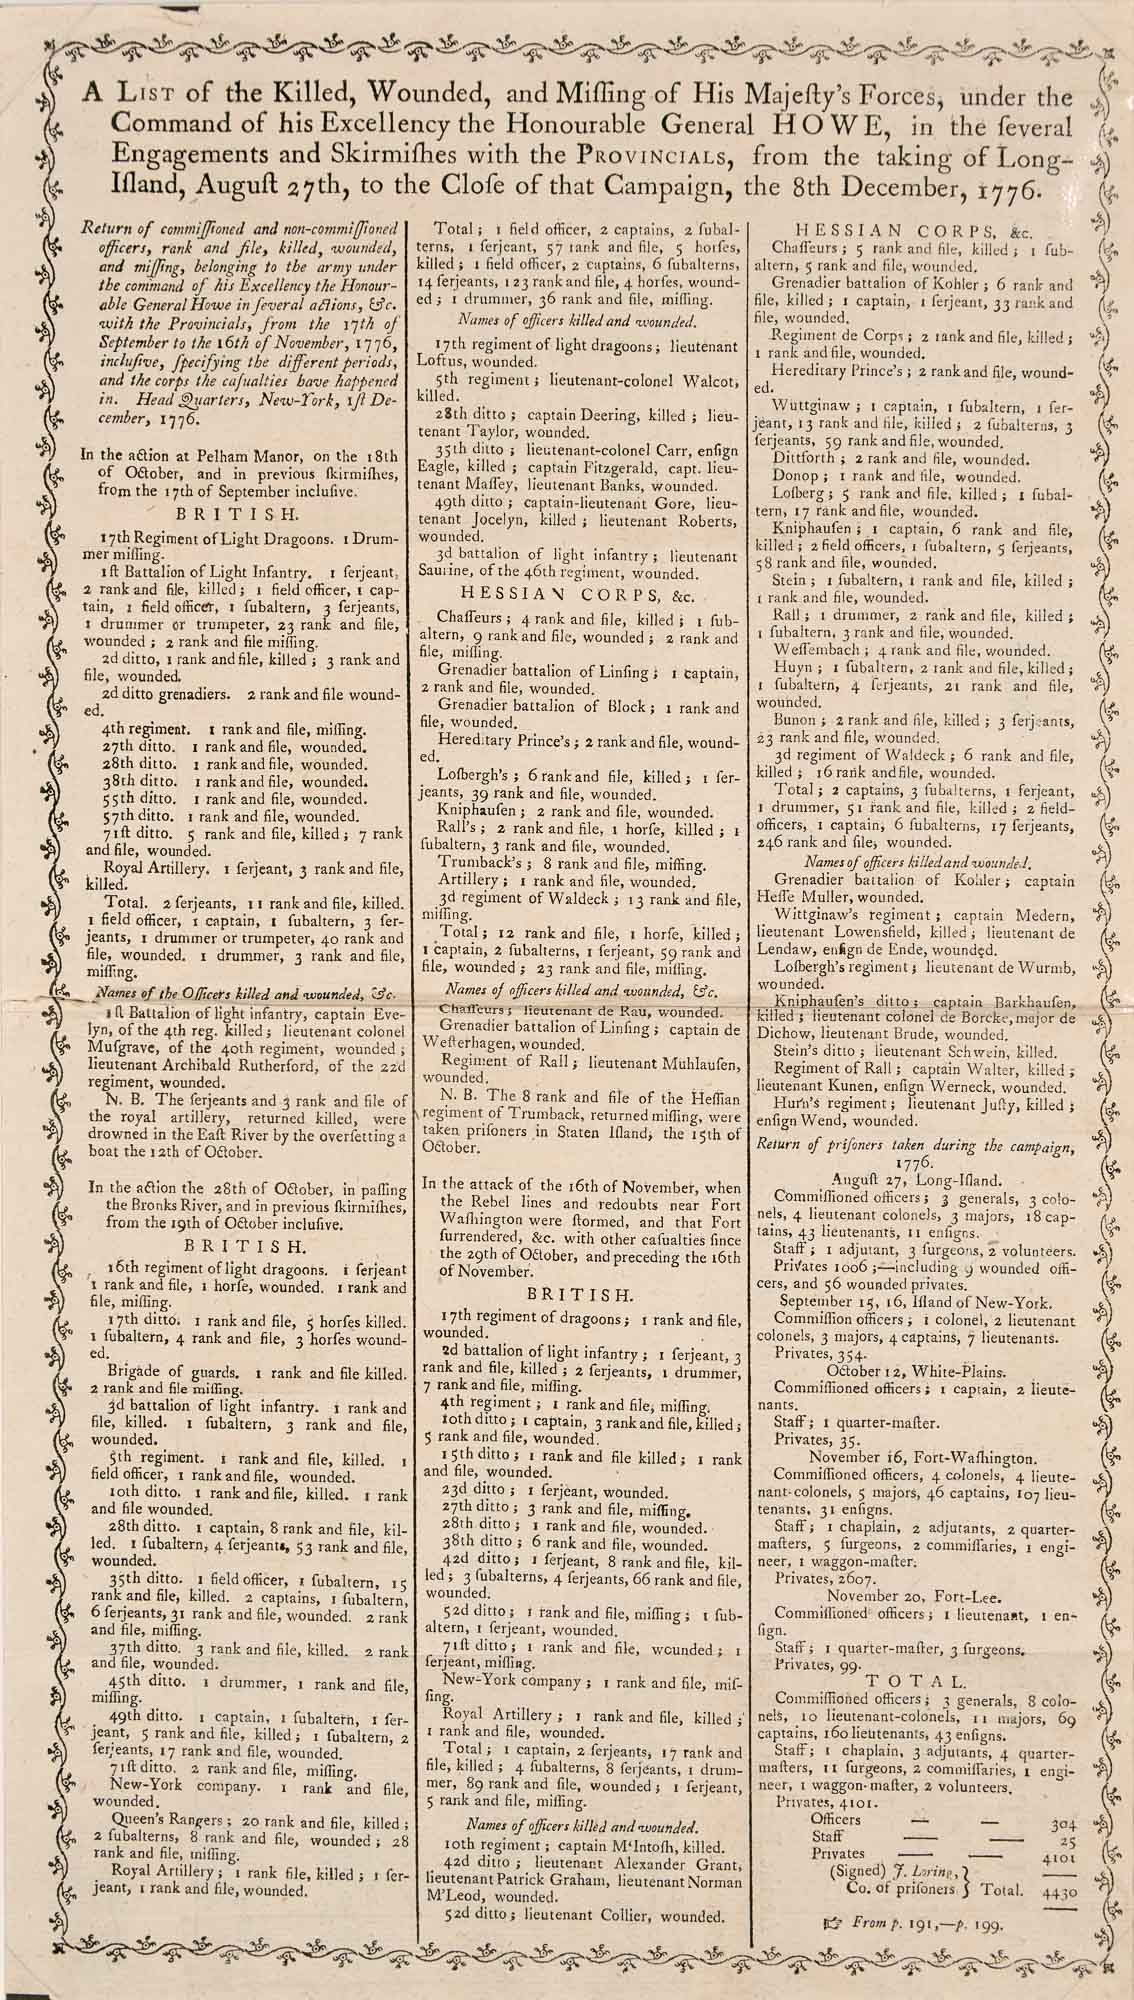 Lot image - [AMERICAN REVOLUTION]  Printed broadsheet listing British casualties at the Battle of Long Island with similar lists of casualties at Lexington and Concord and Bunker Hill.